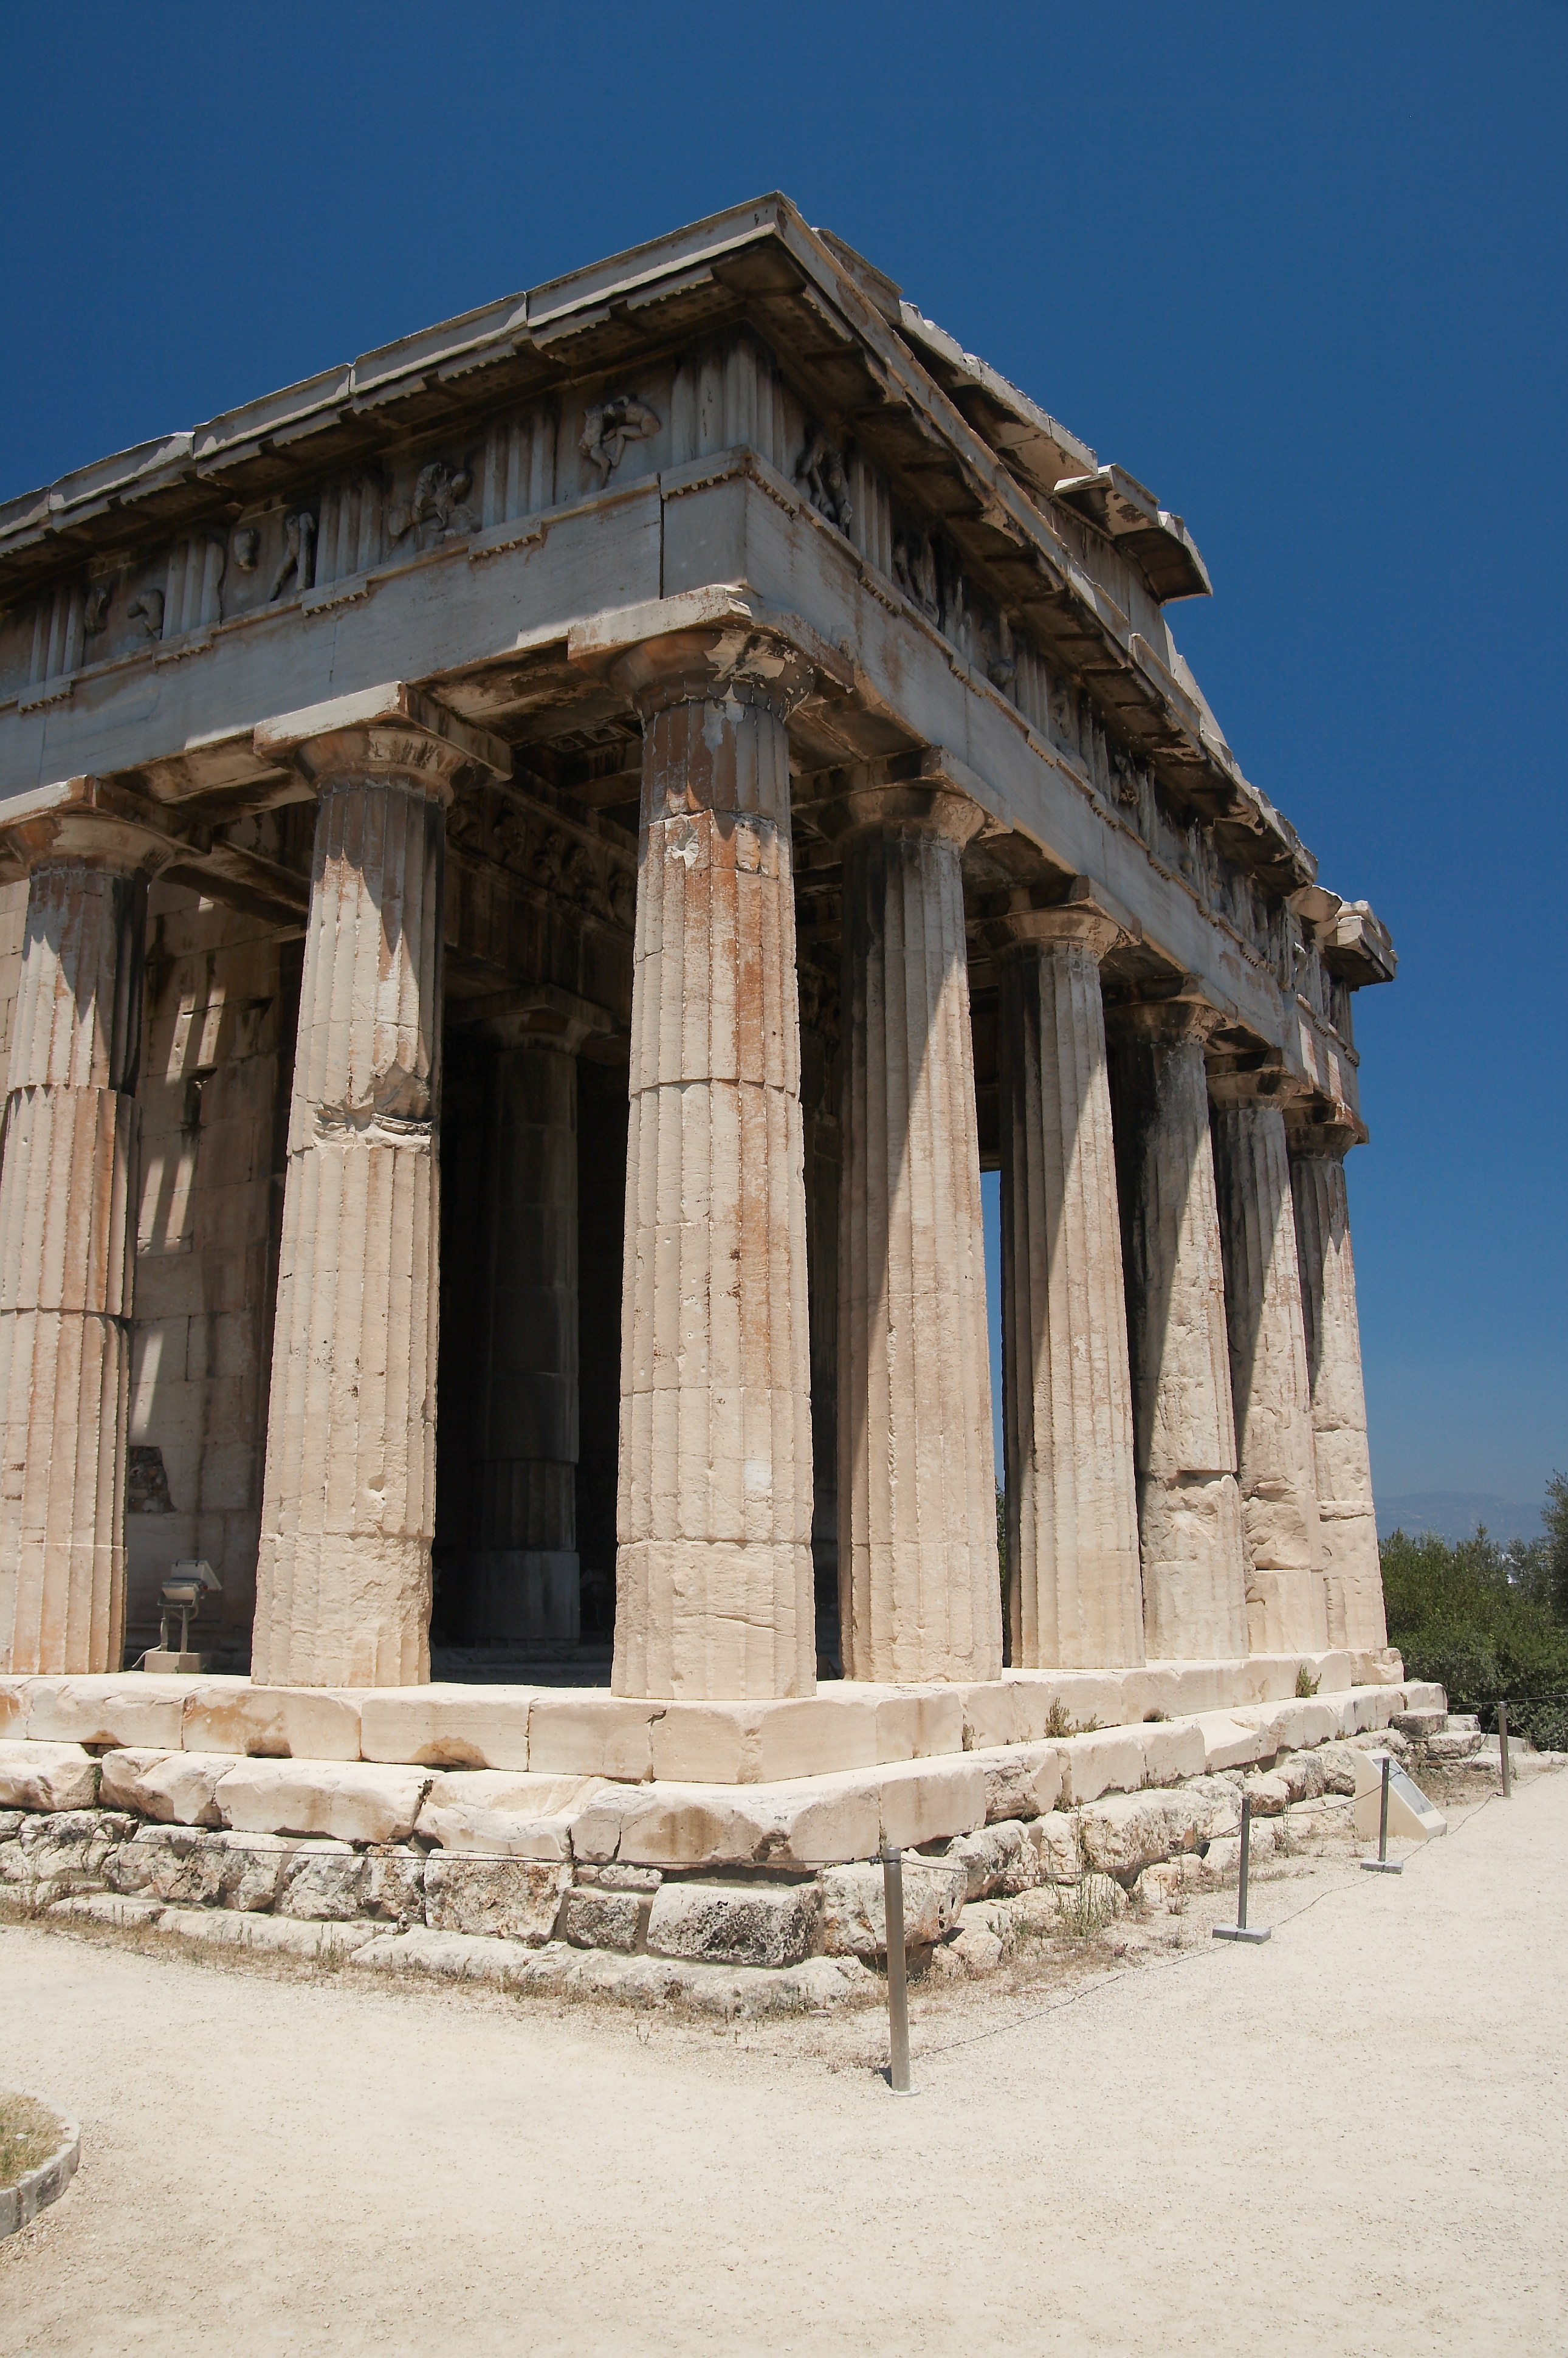 File:Temple of Hephaestus (Southwest), Athens - 20070711 ...